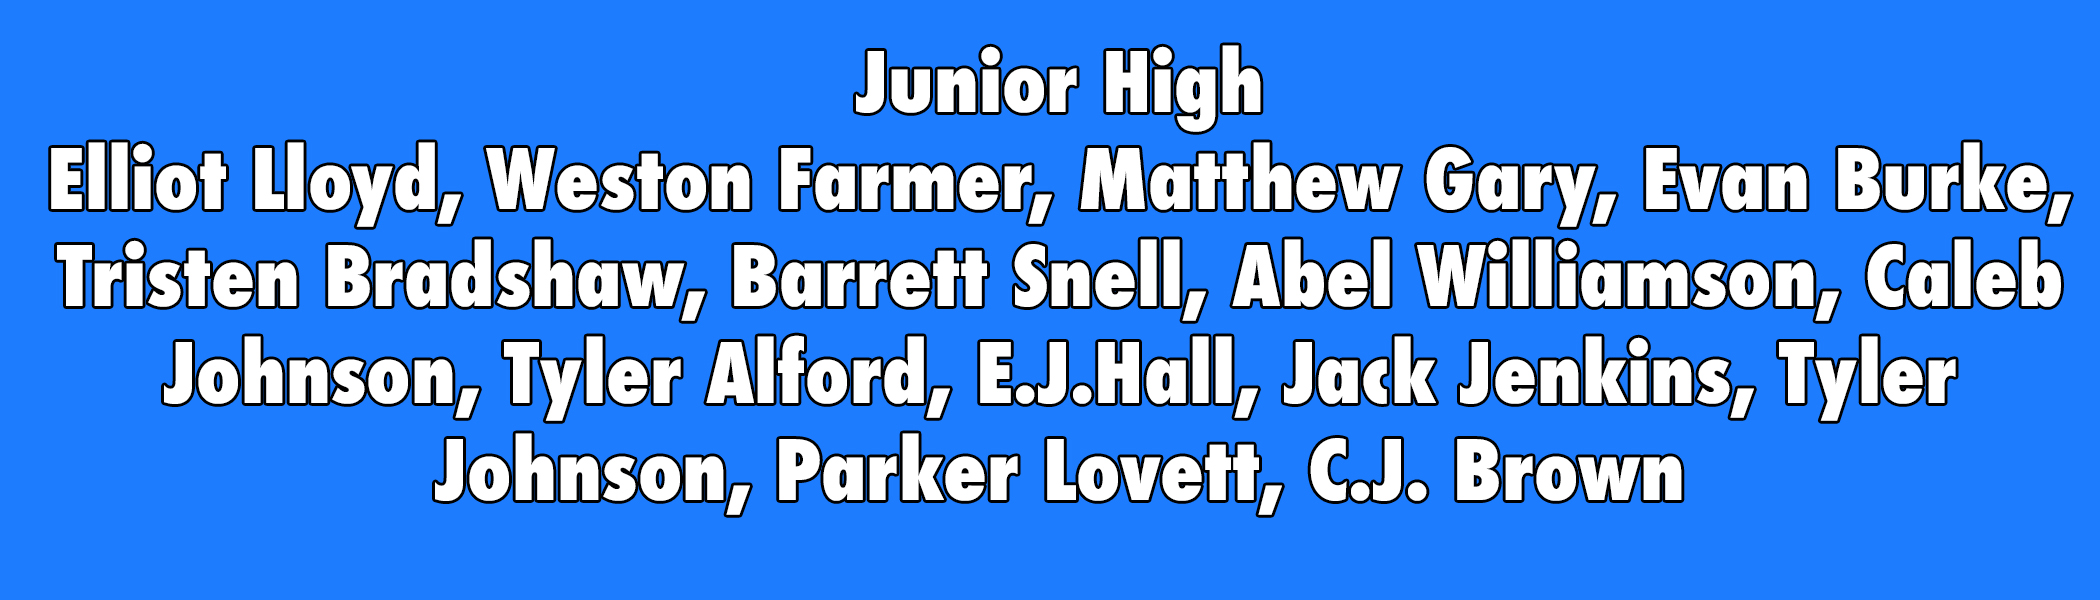 Junior High boys list